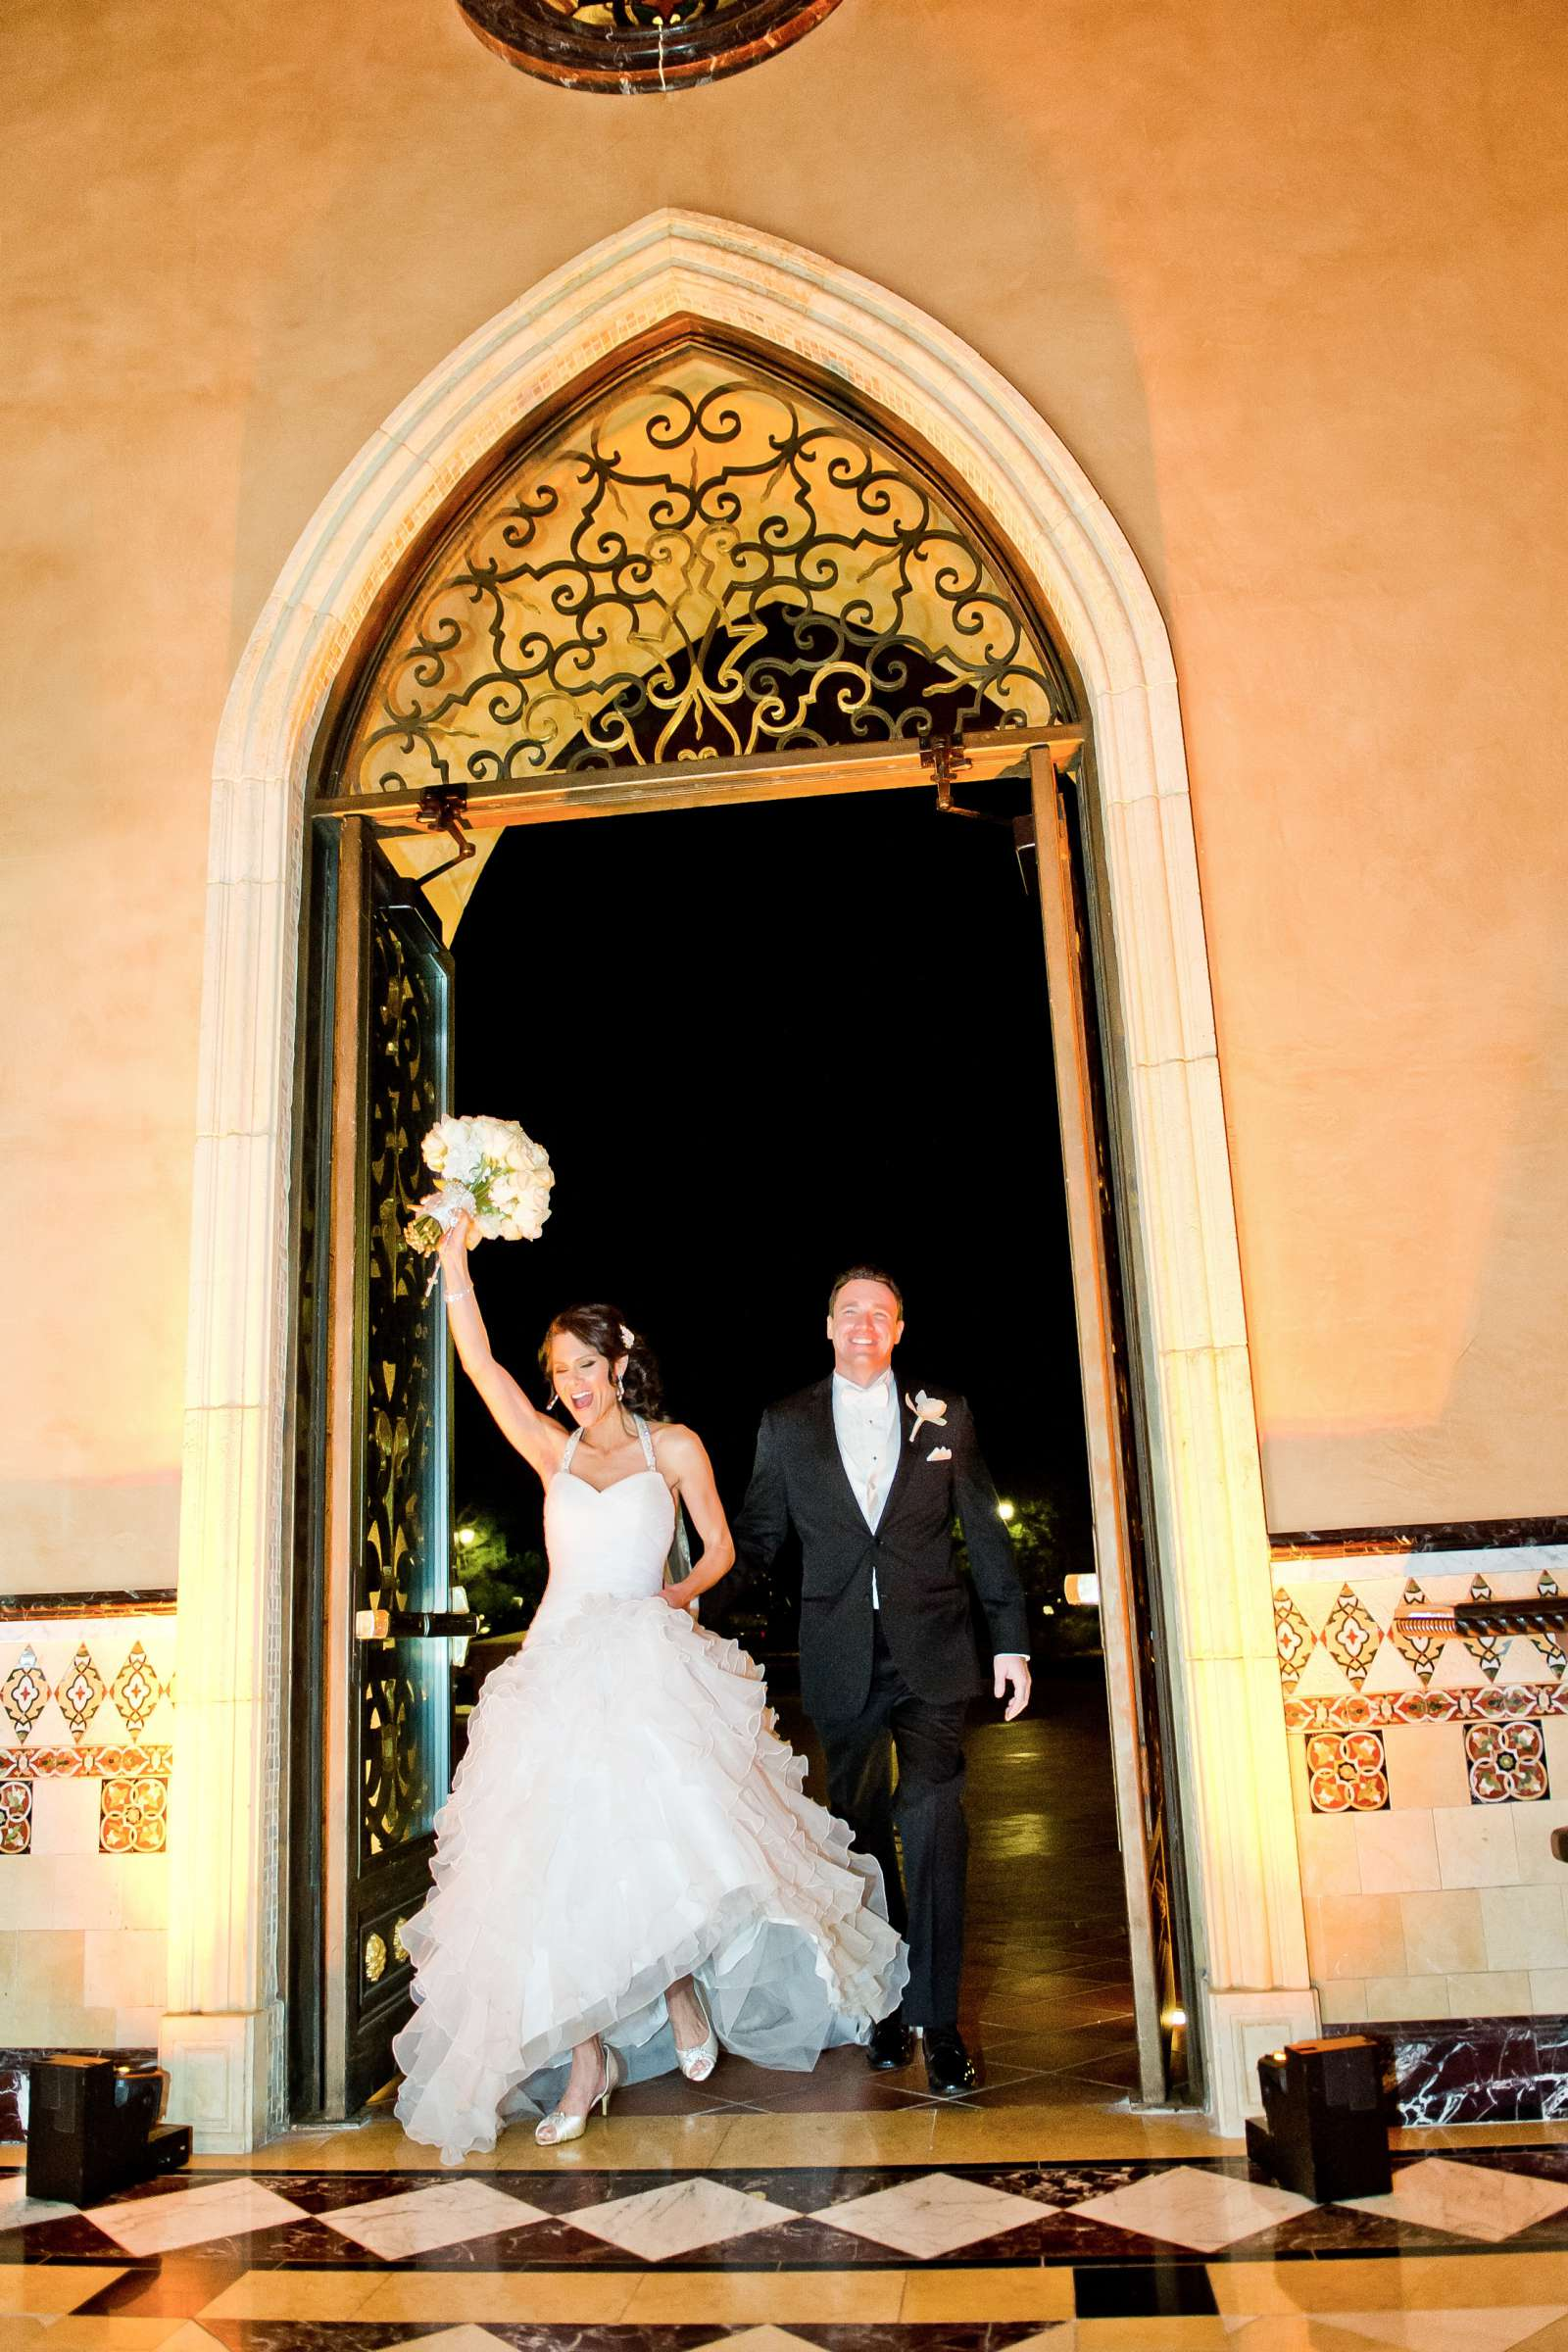 Fairmont Grand Del Mar Wedding, Angela and Tom Wedding Photo #41 by True Photography